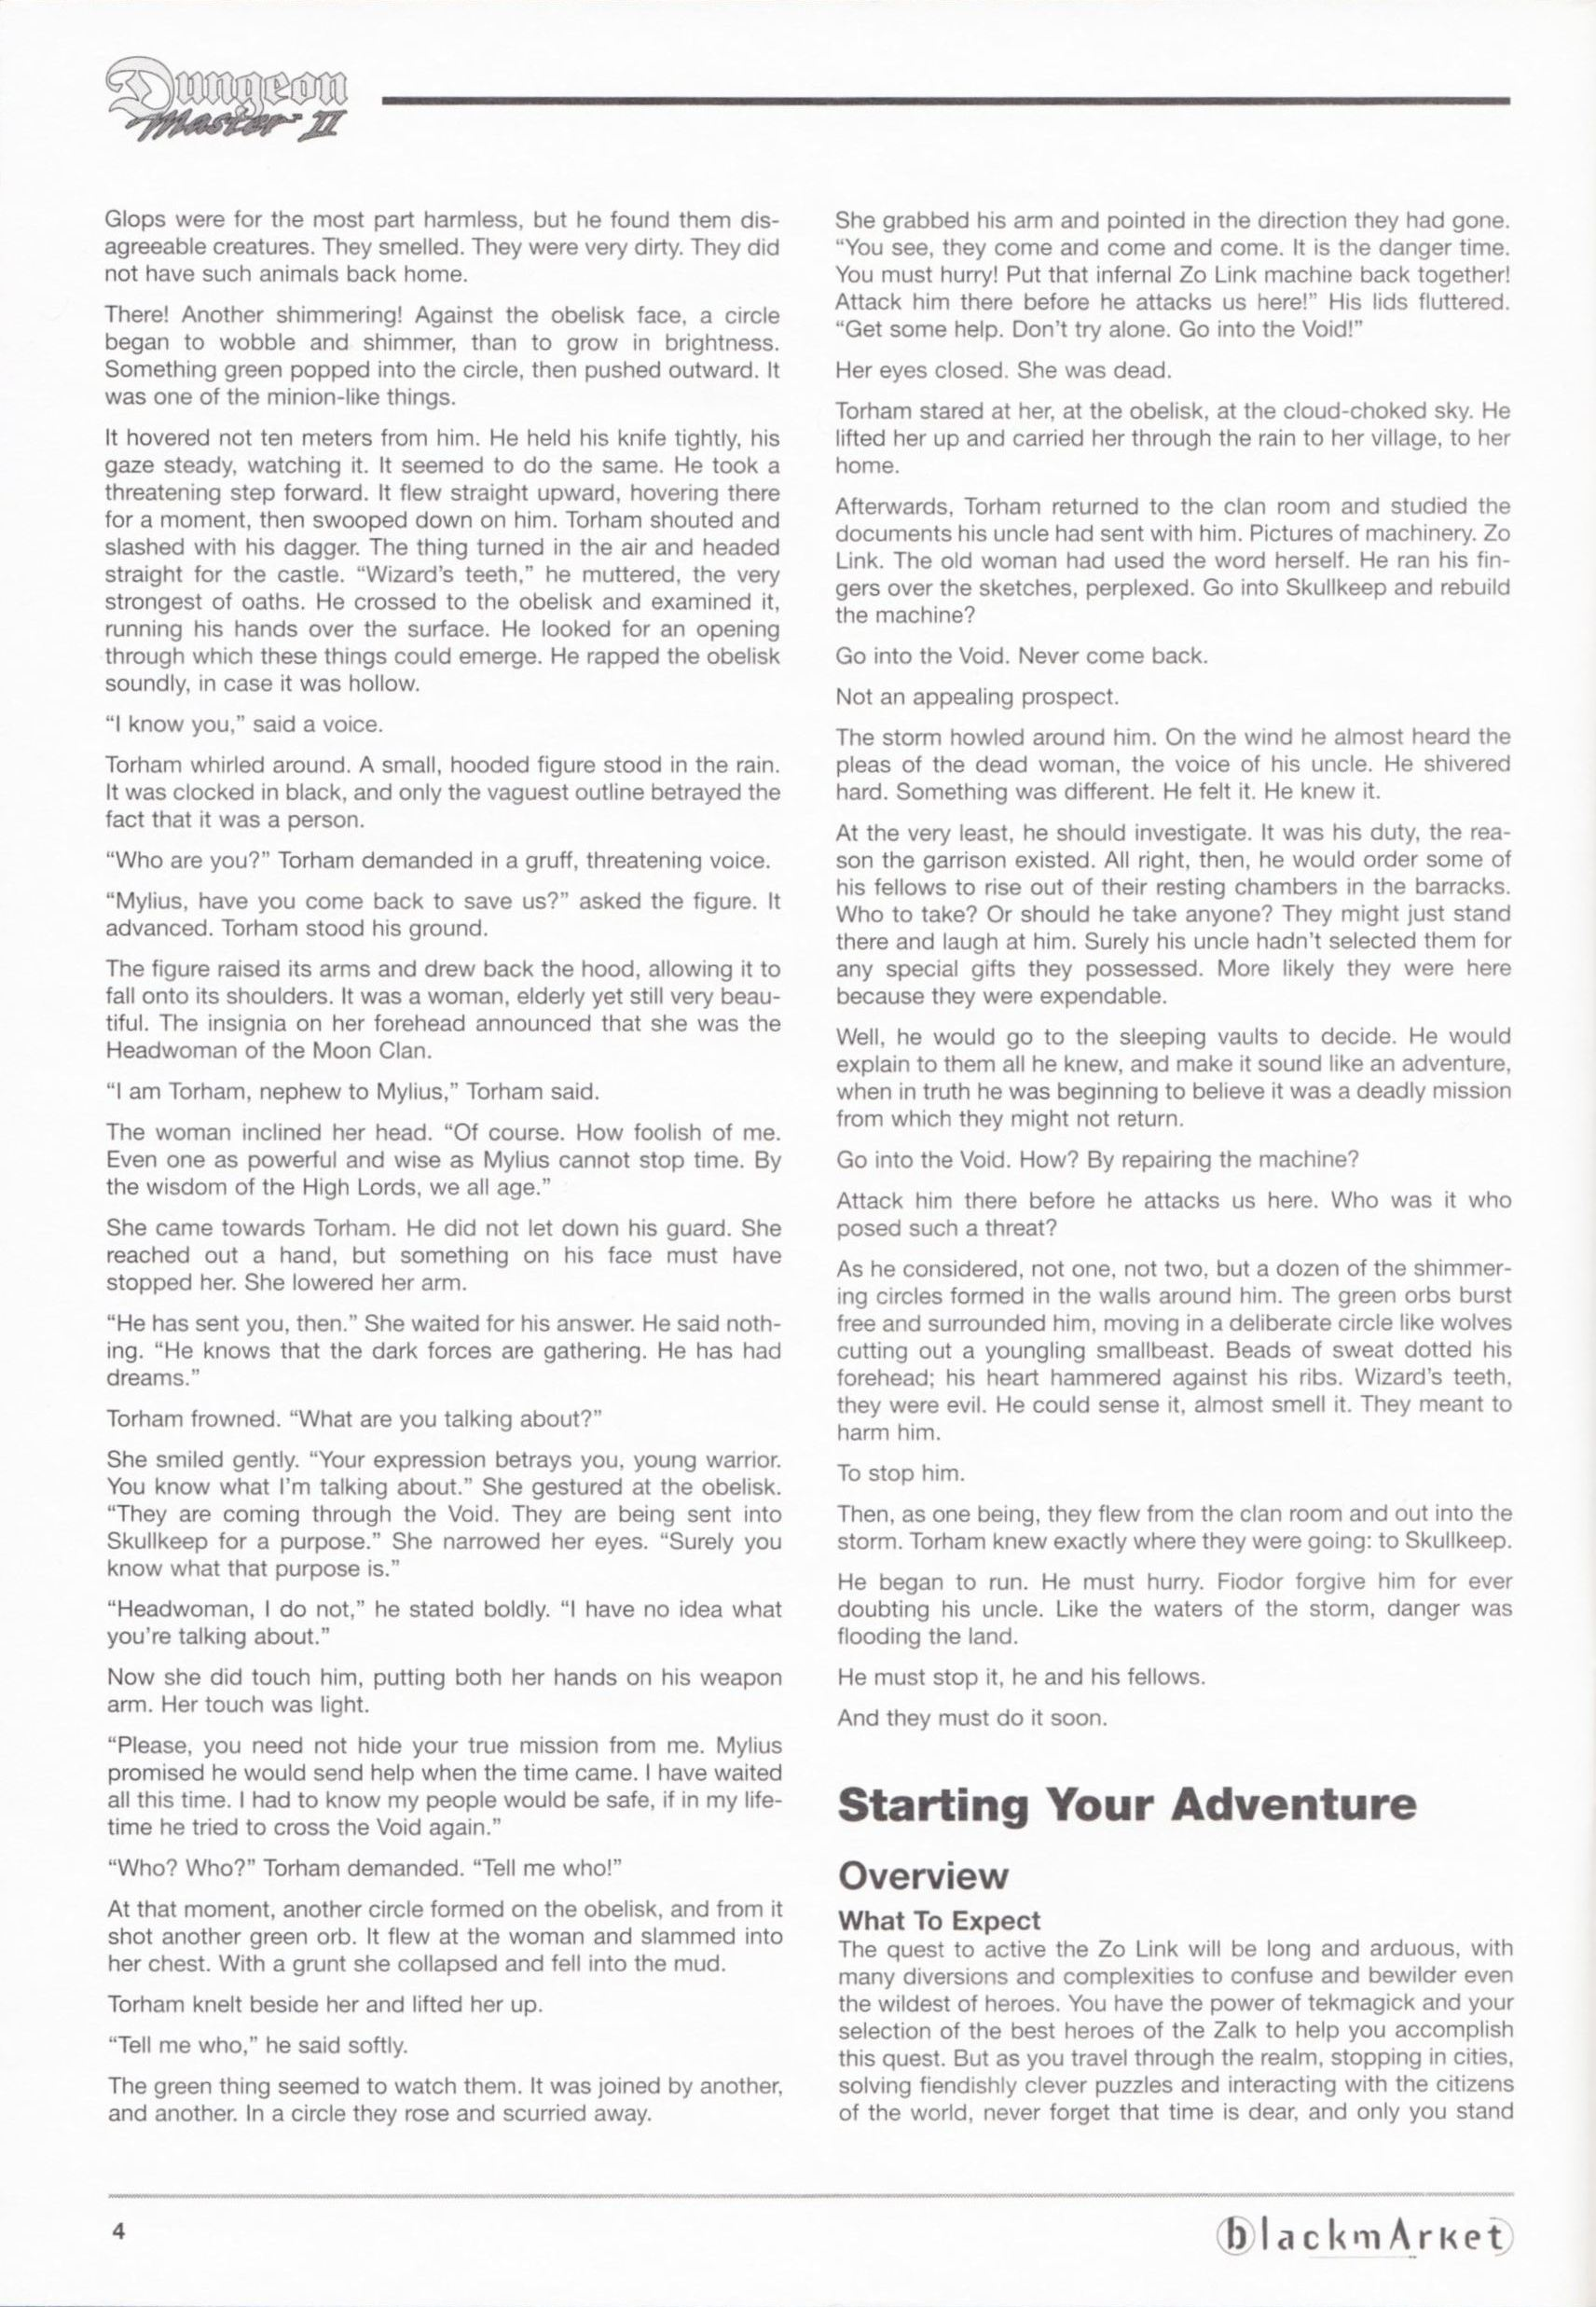 Game - Dungeon Master II - DE - PC - Blackmarket With Manual - Manual - Page 006 - Scan